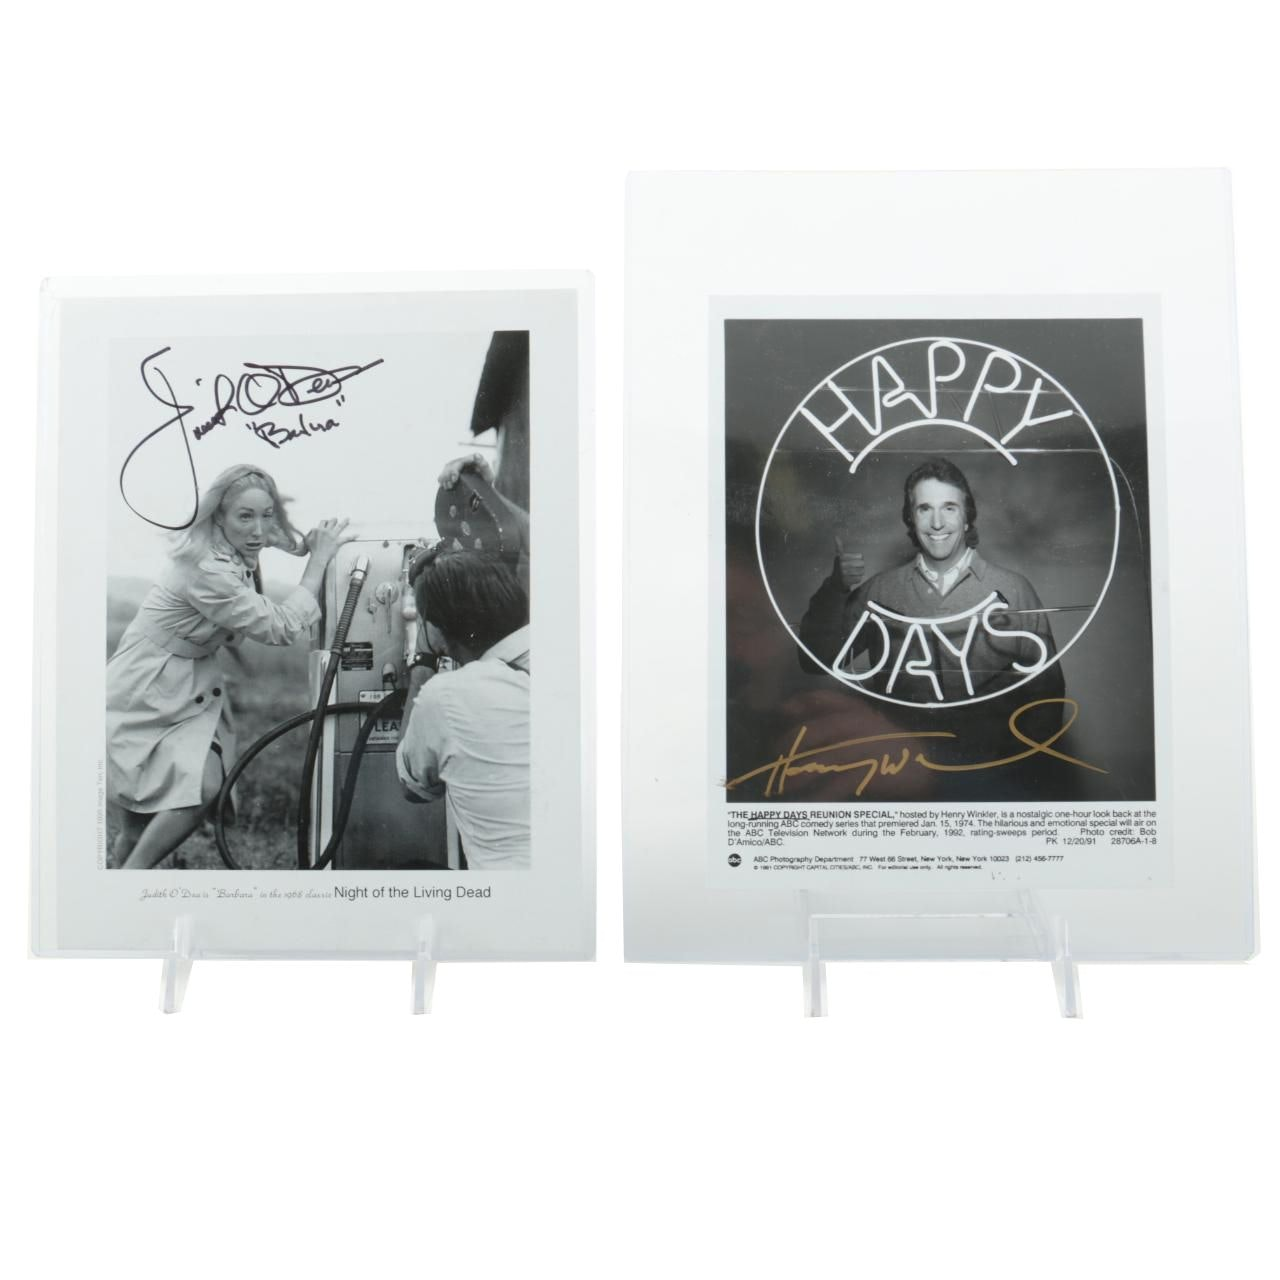 Henry Winkler and Judith O'Dea Signed Photographs